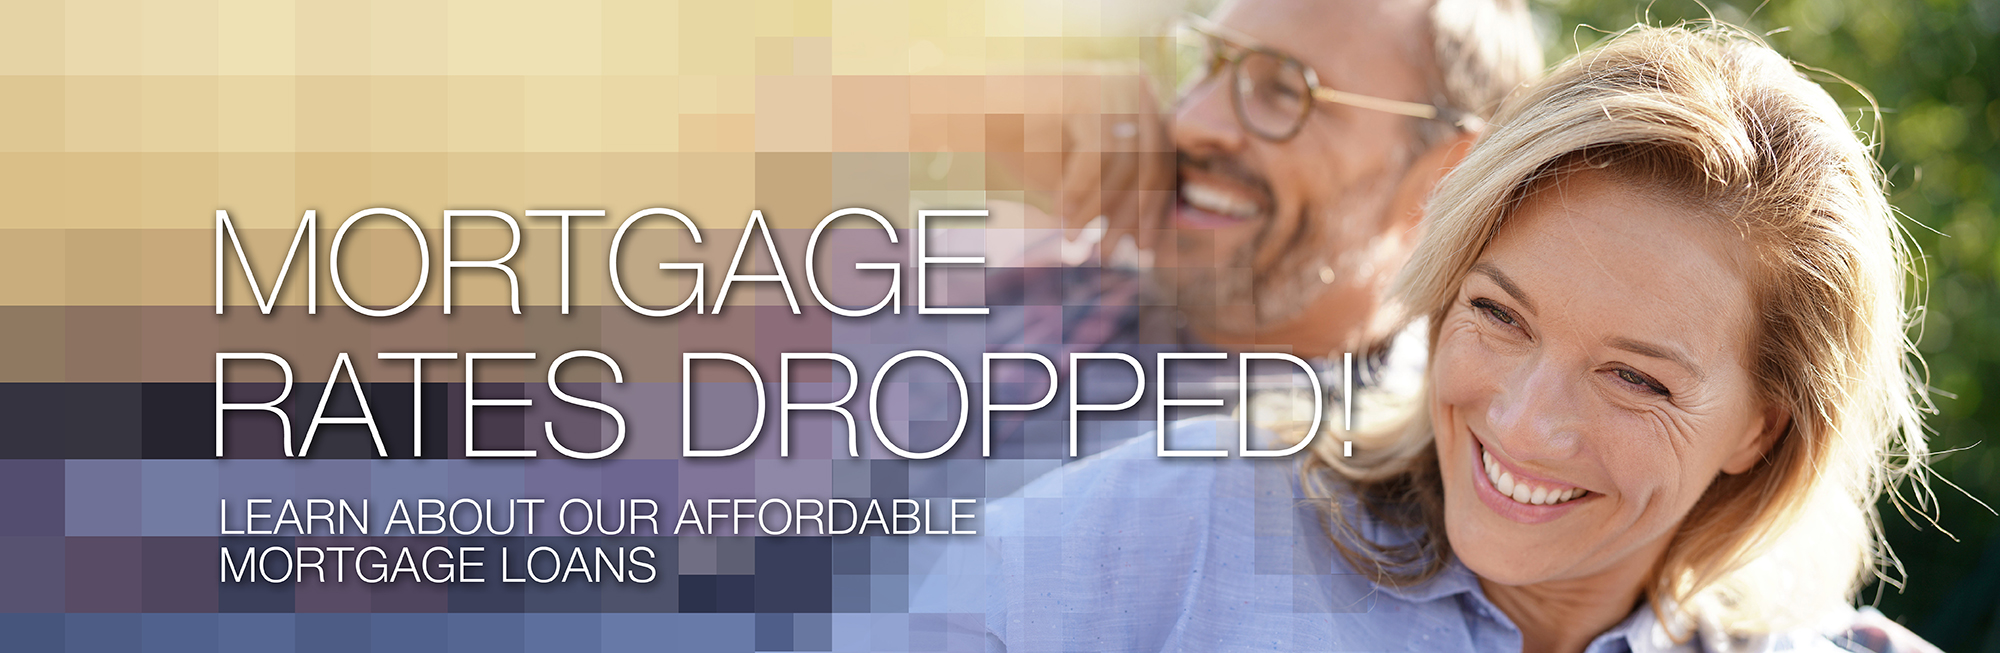 Mortgage rates have dropped. Find out if a refinance is right for you.